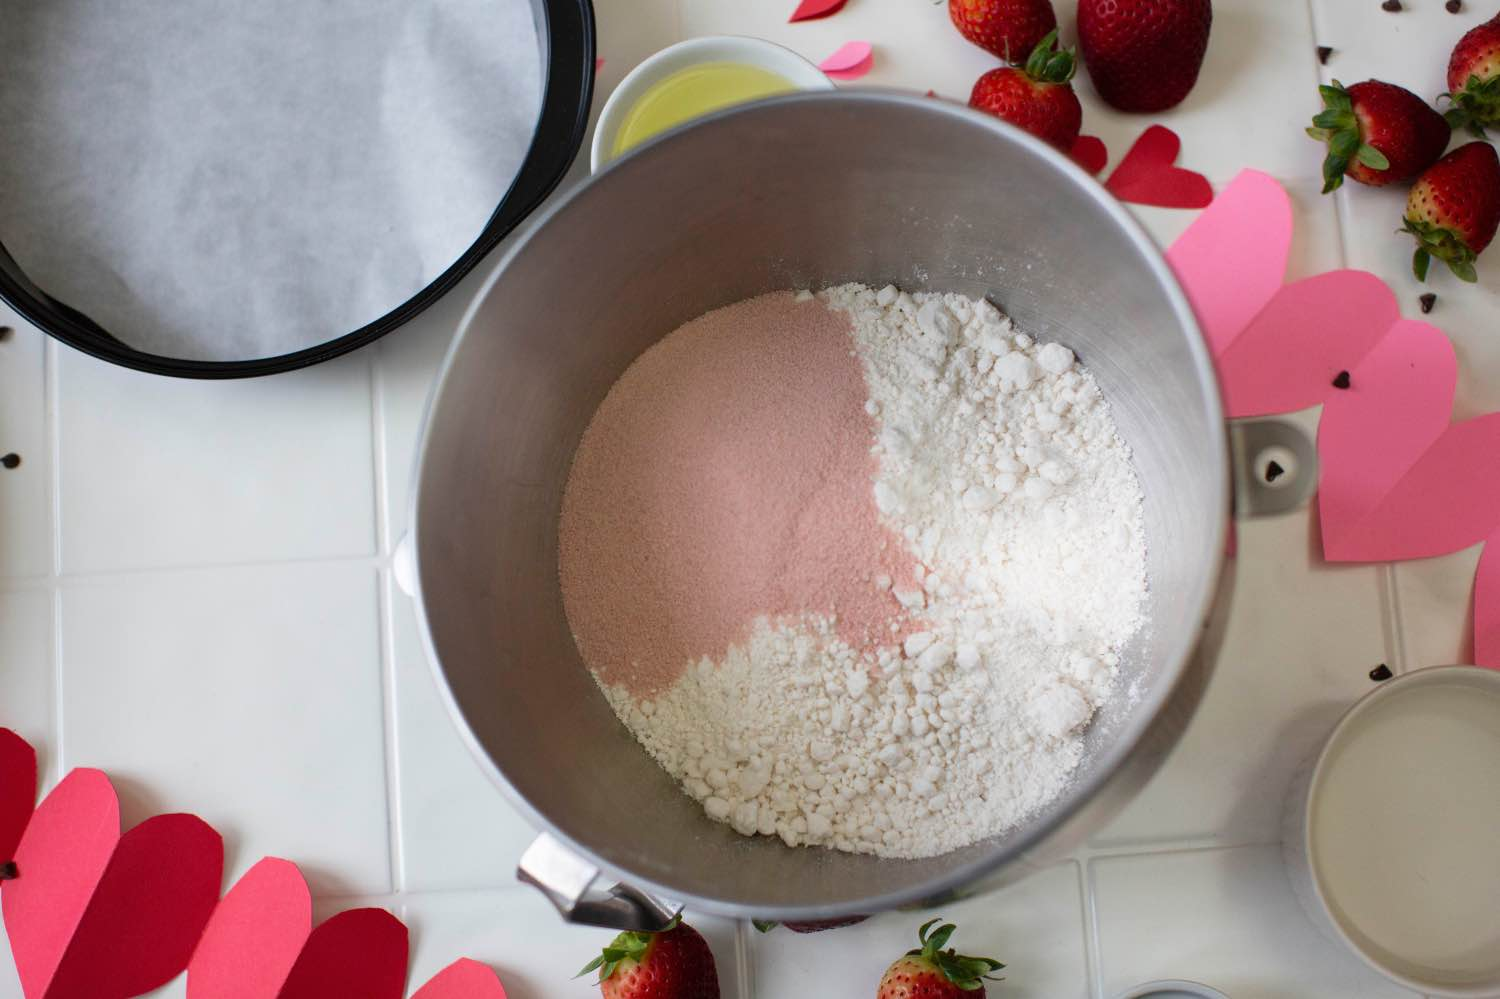 add the strawberry jello to the dry mix for strawberry cake